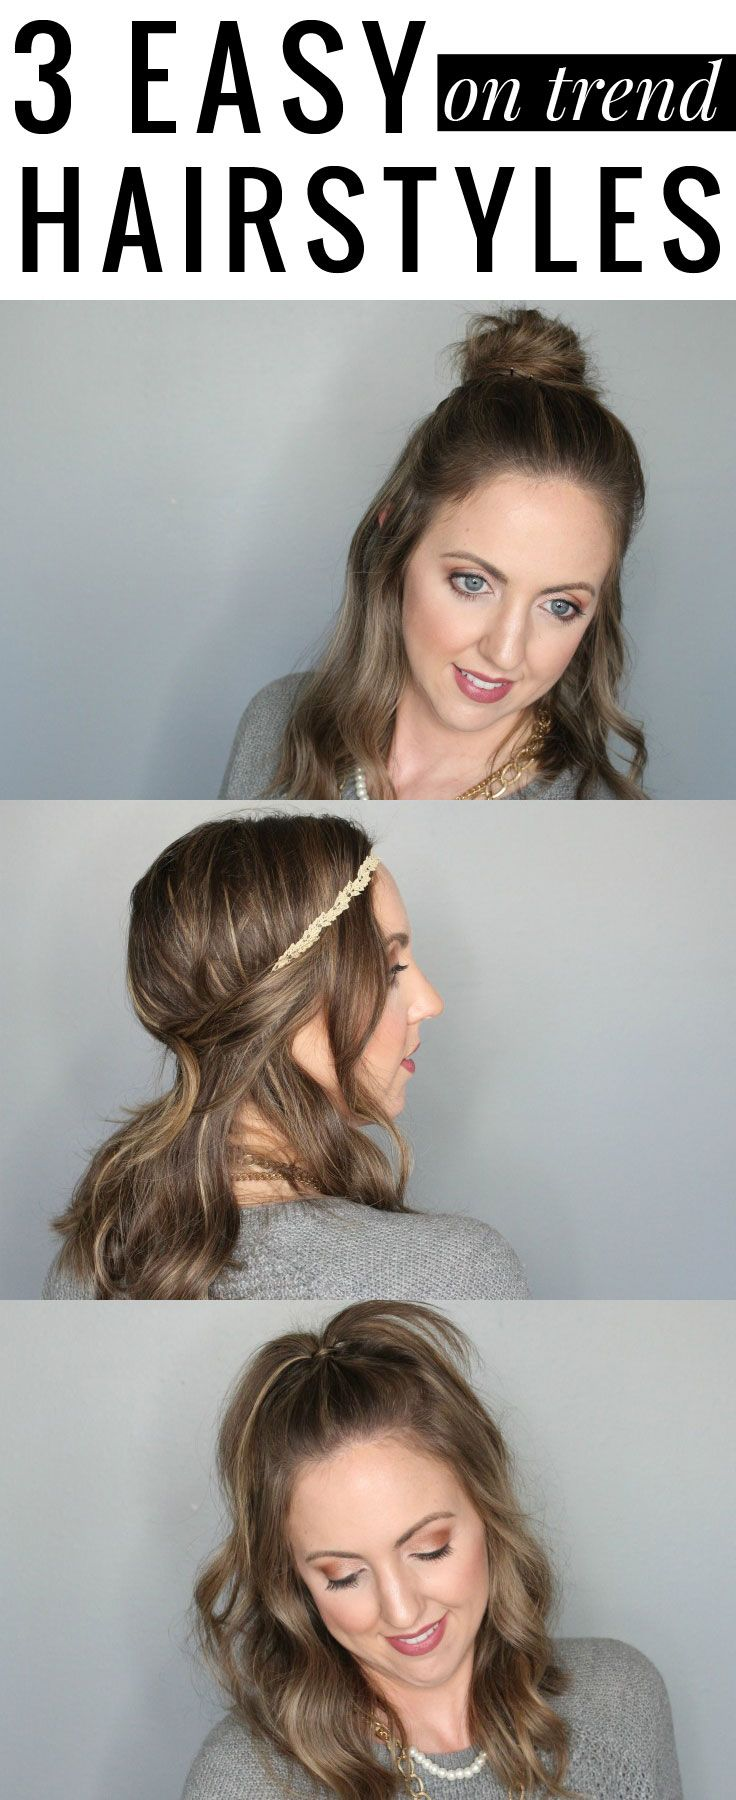 3 Easy (on trend!) Hairstyles - looking put together in a pinch is easier than you thought! Headband tuck, half ponytail, and fun bun are all quick and easy!